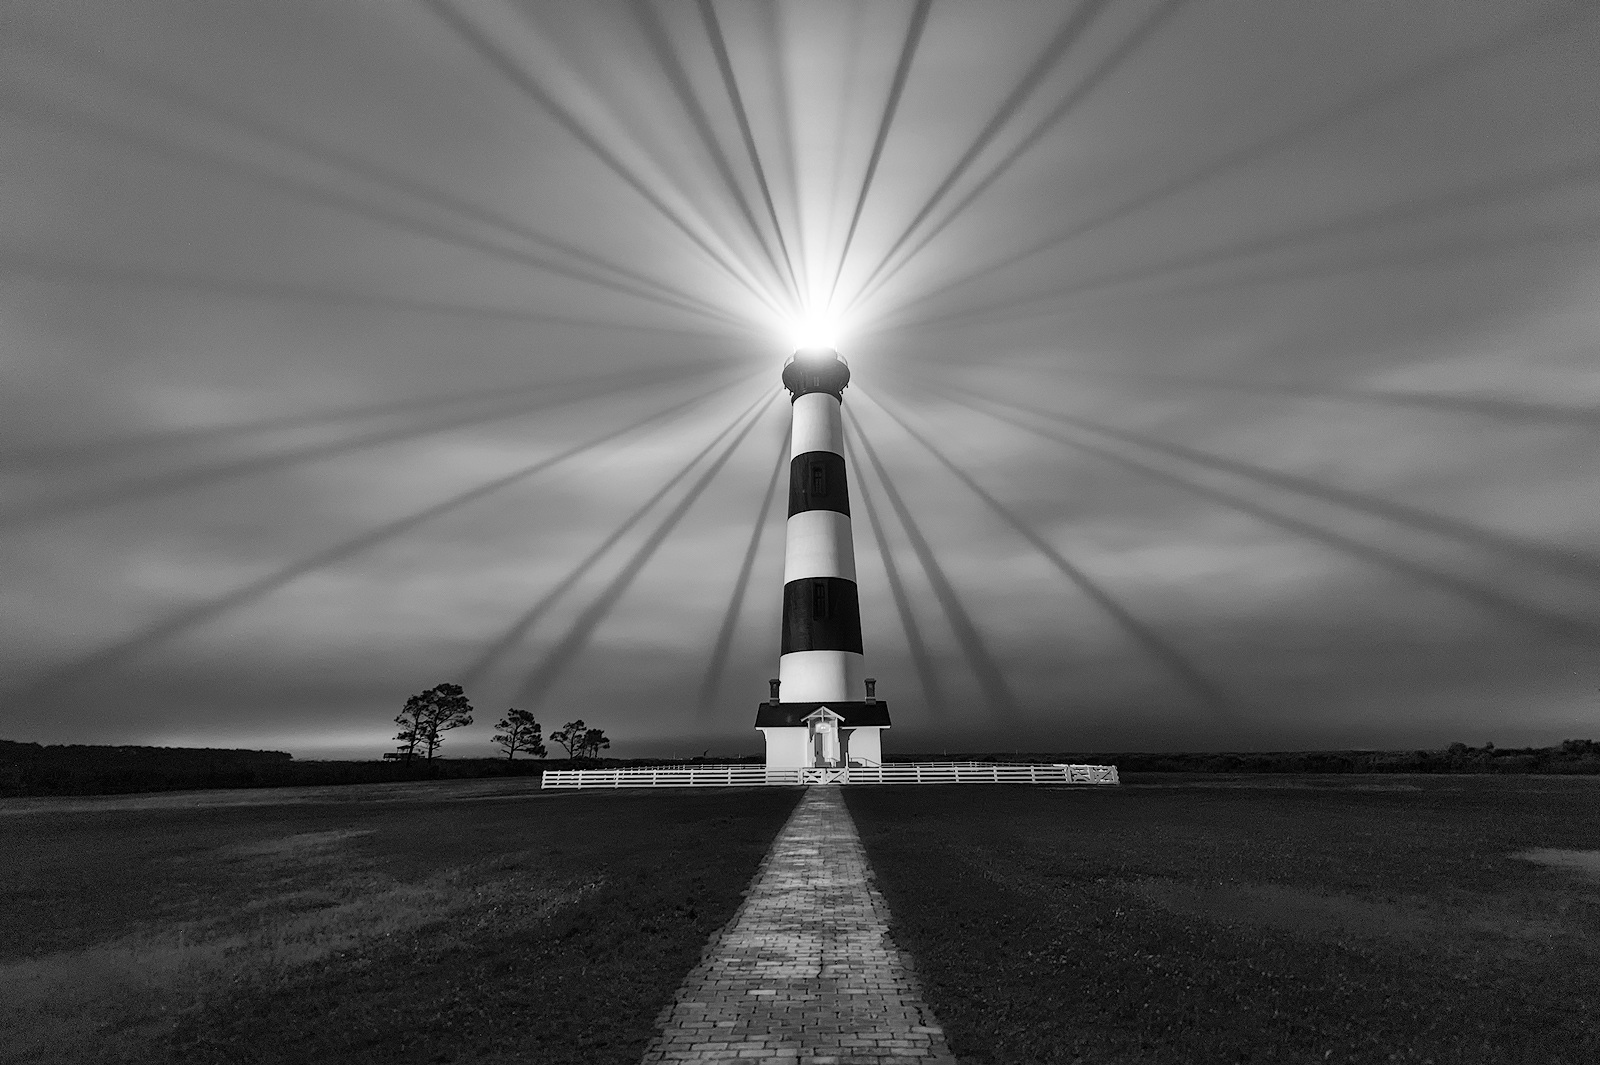 Bodie Island Lighthouse, North Carolina, sunset, OBX, Outer Banks, Hatteras Island, Cape Hatteras Seashores, scenic, rays, dramatic sky, serene, outdoor, landscape, historic, atlantic, ocean, photo